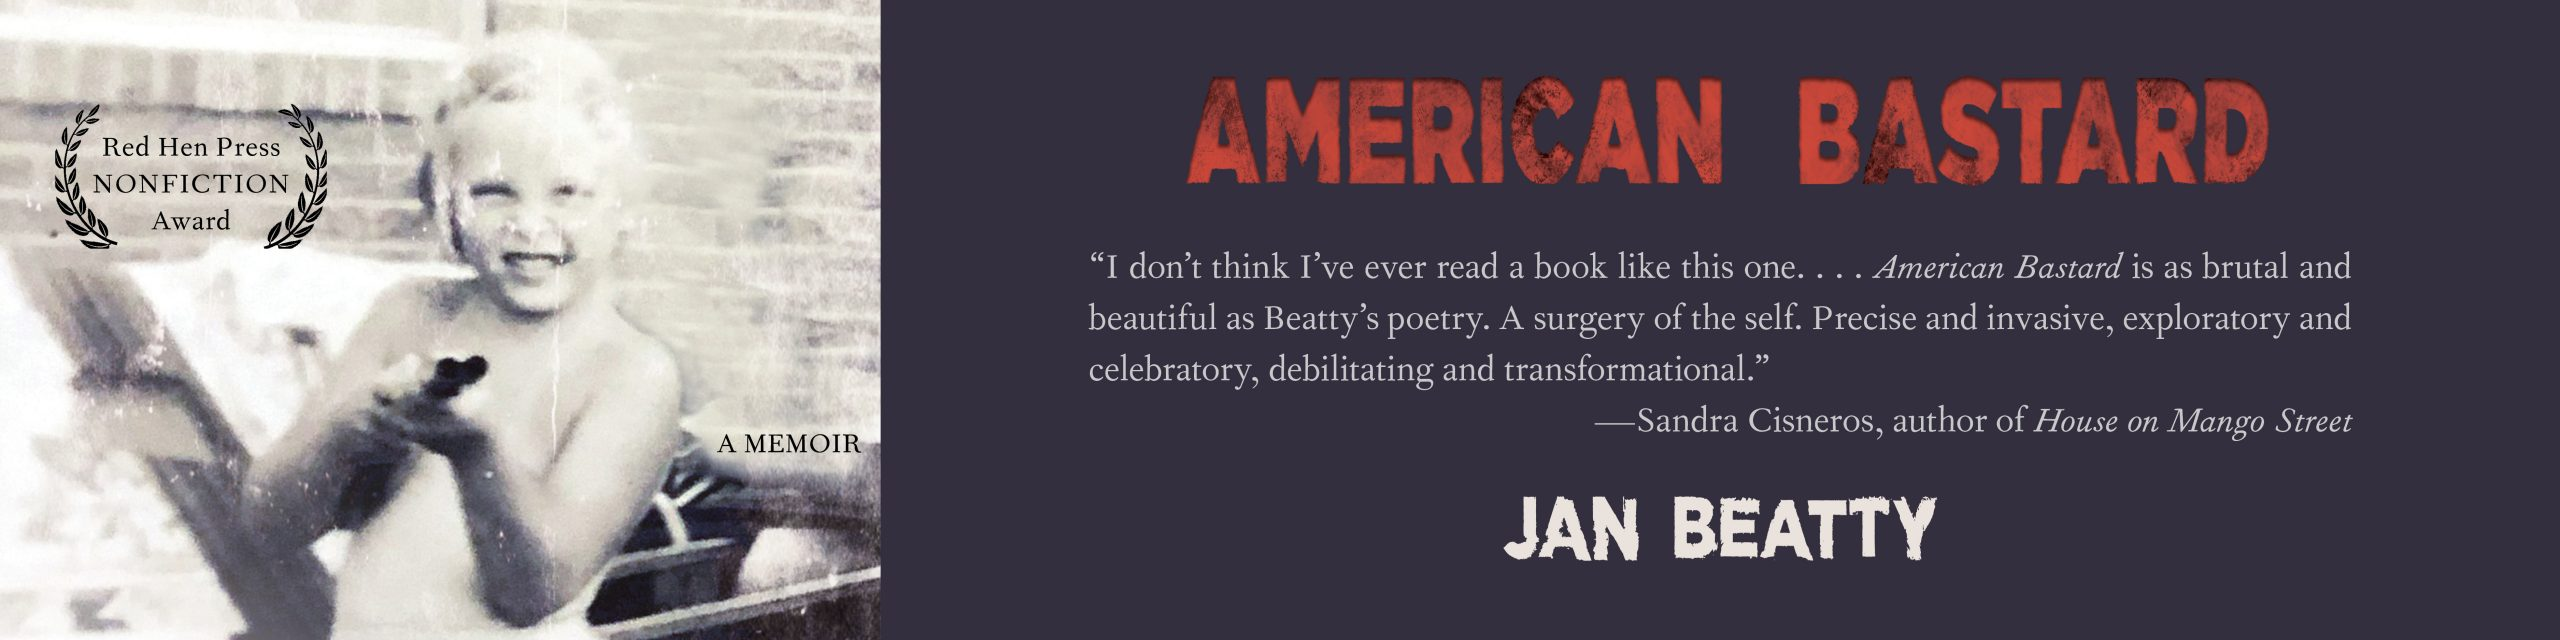 Promotional banner celebrating the release of American Bastard by Jan Beatty